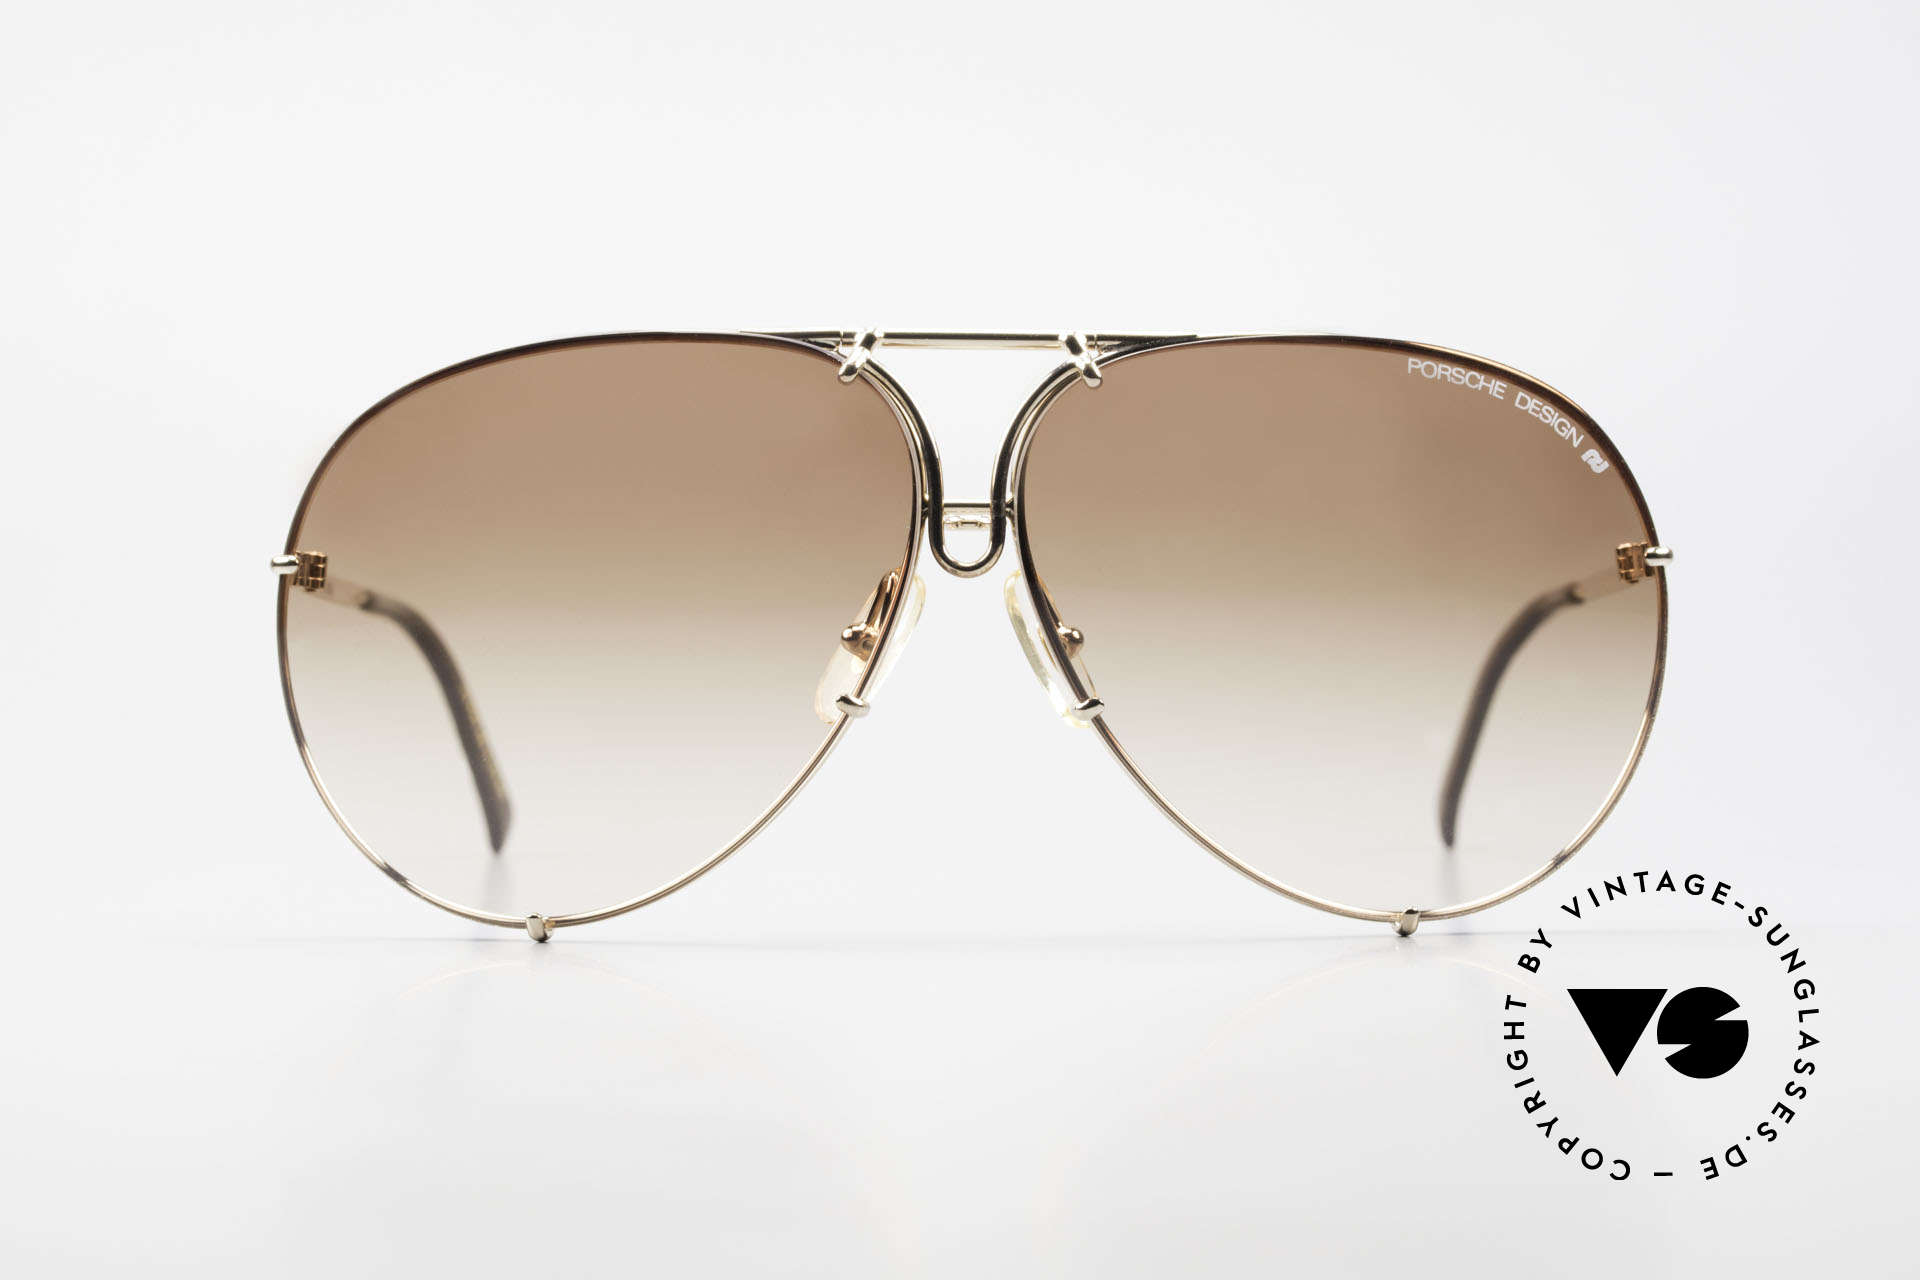 Porsche 5623 Black Mass Movie Sunglasses, gold & brown-gradient lenses = most wanted version!, Made for Men and Women